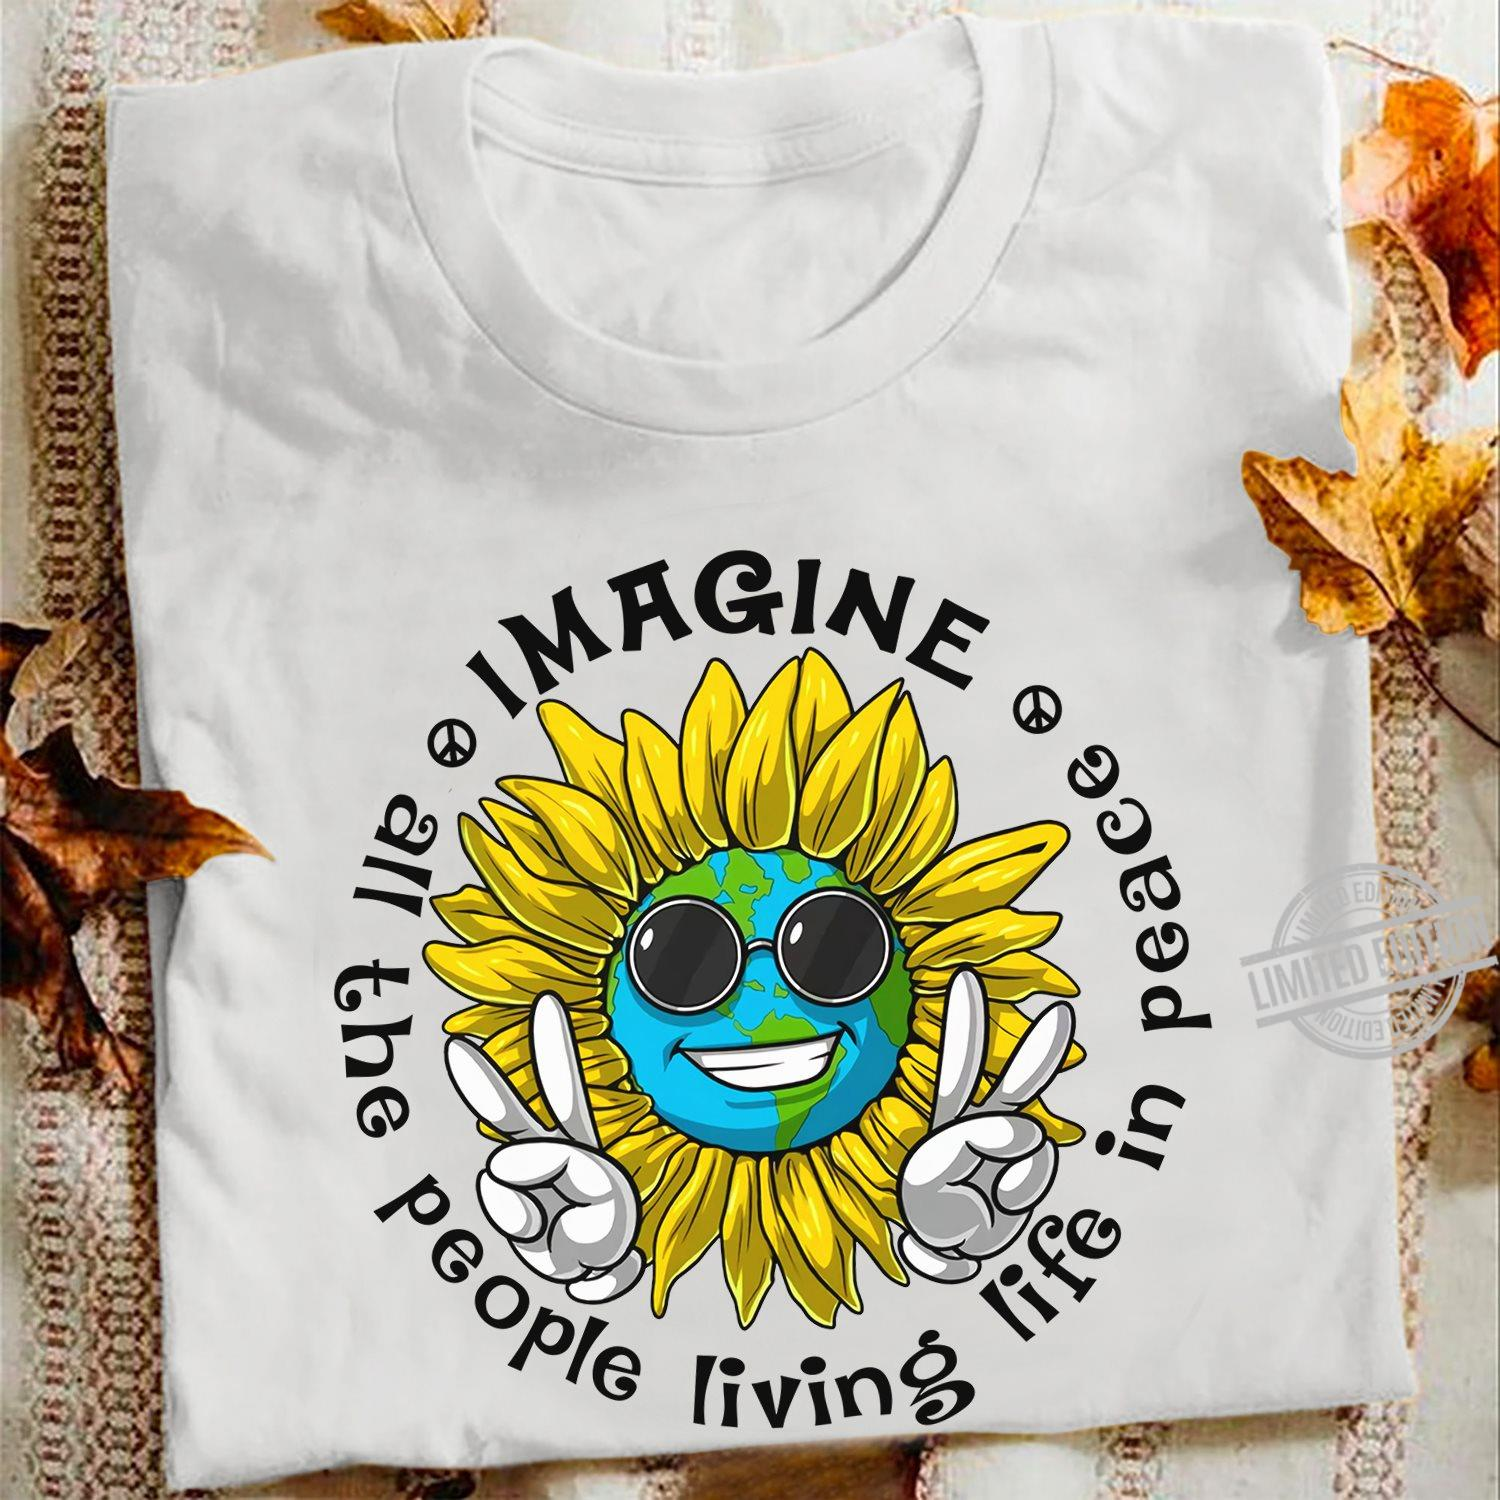 All The People Living Life In Peace Men T-Shirt